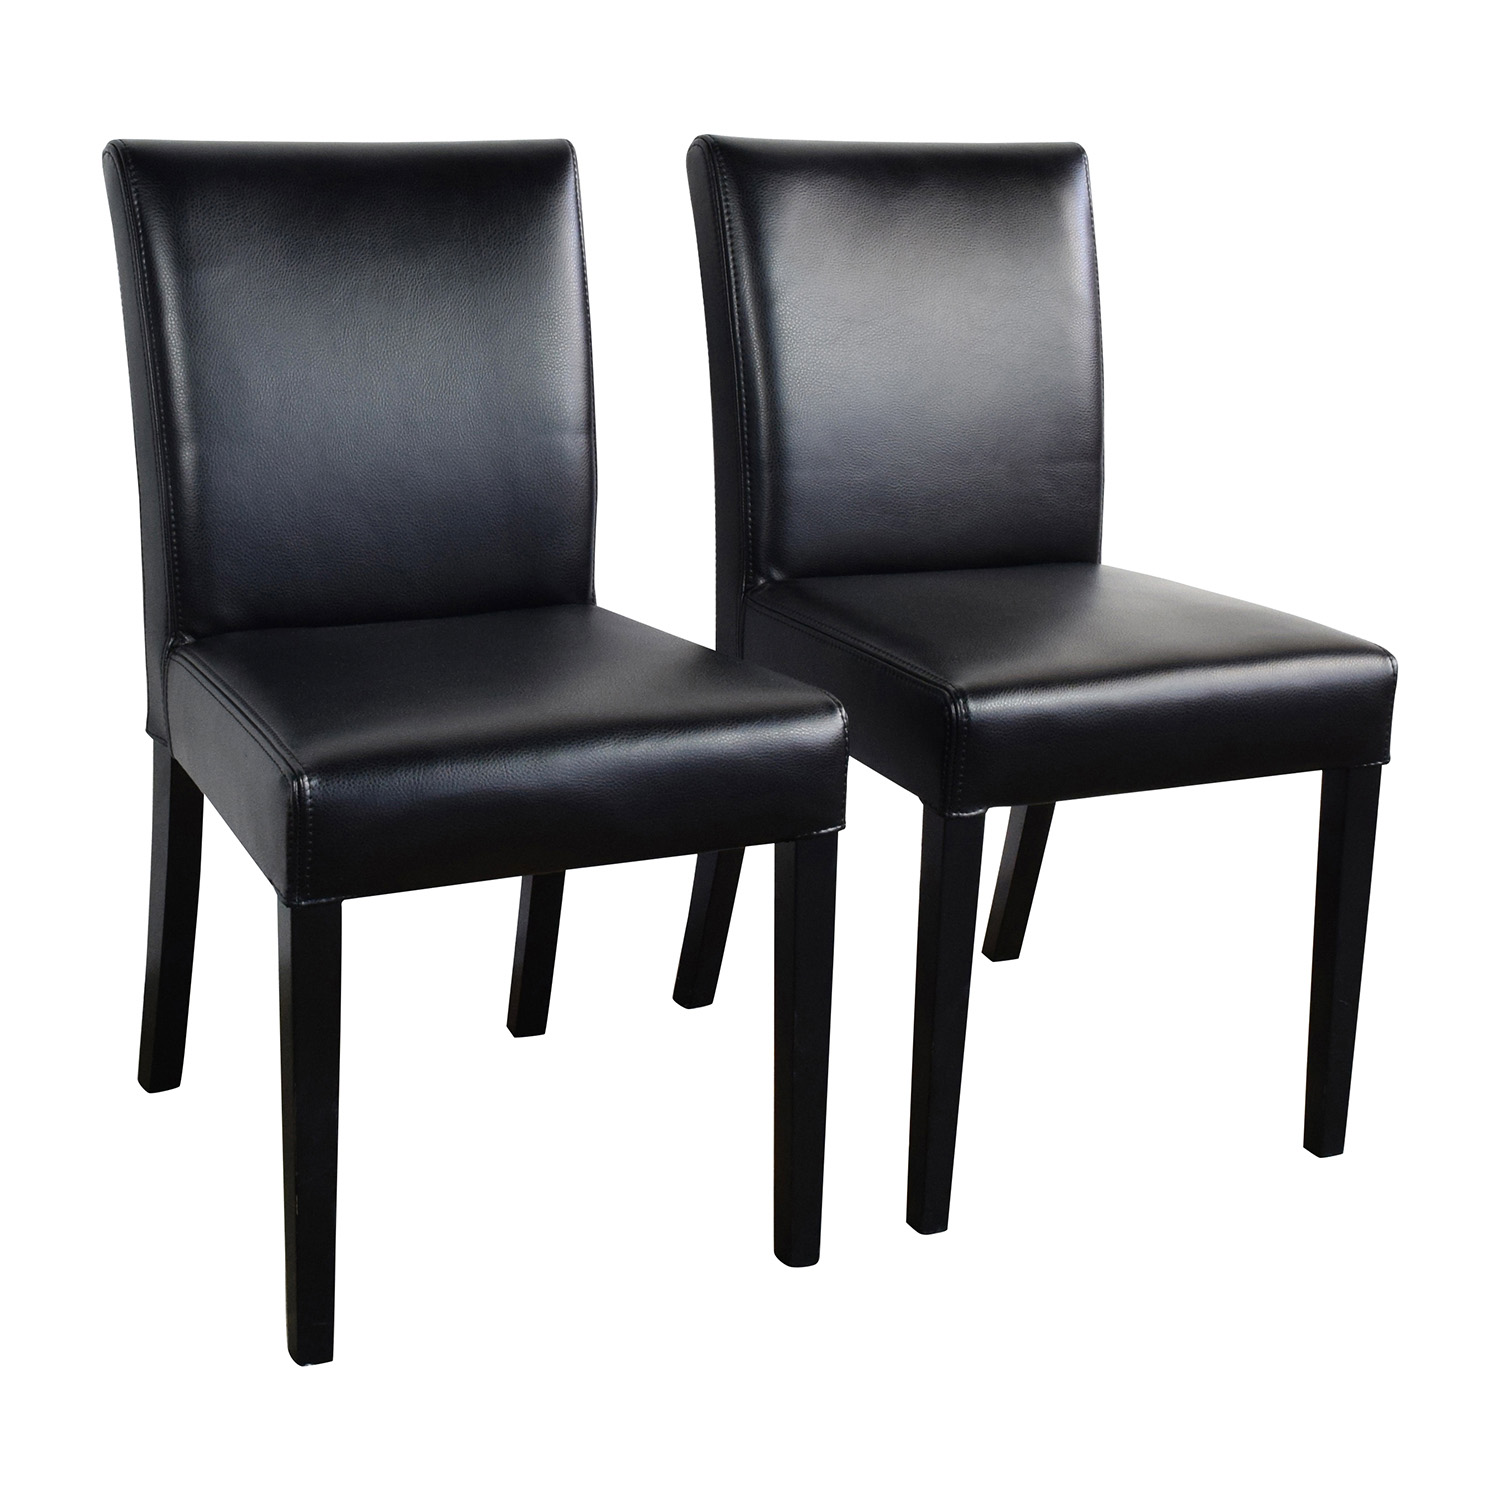 Black Barrel Chair 47 Off Crate And Barrel Crate And Barrel Lowe Onyx Black